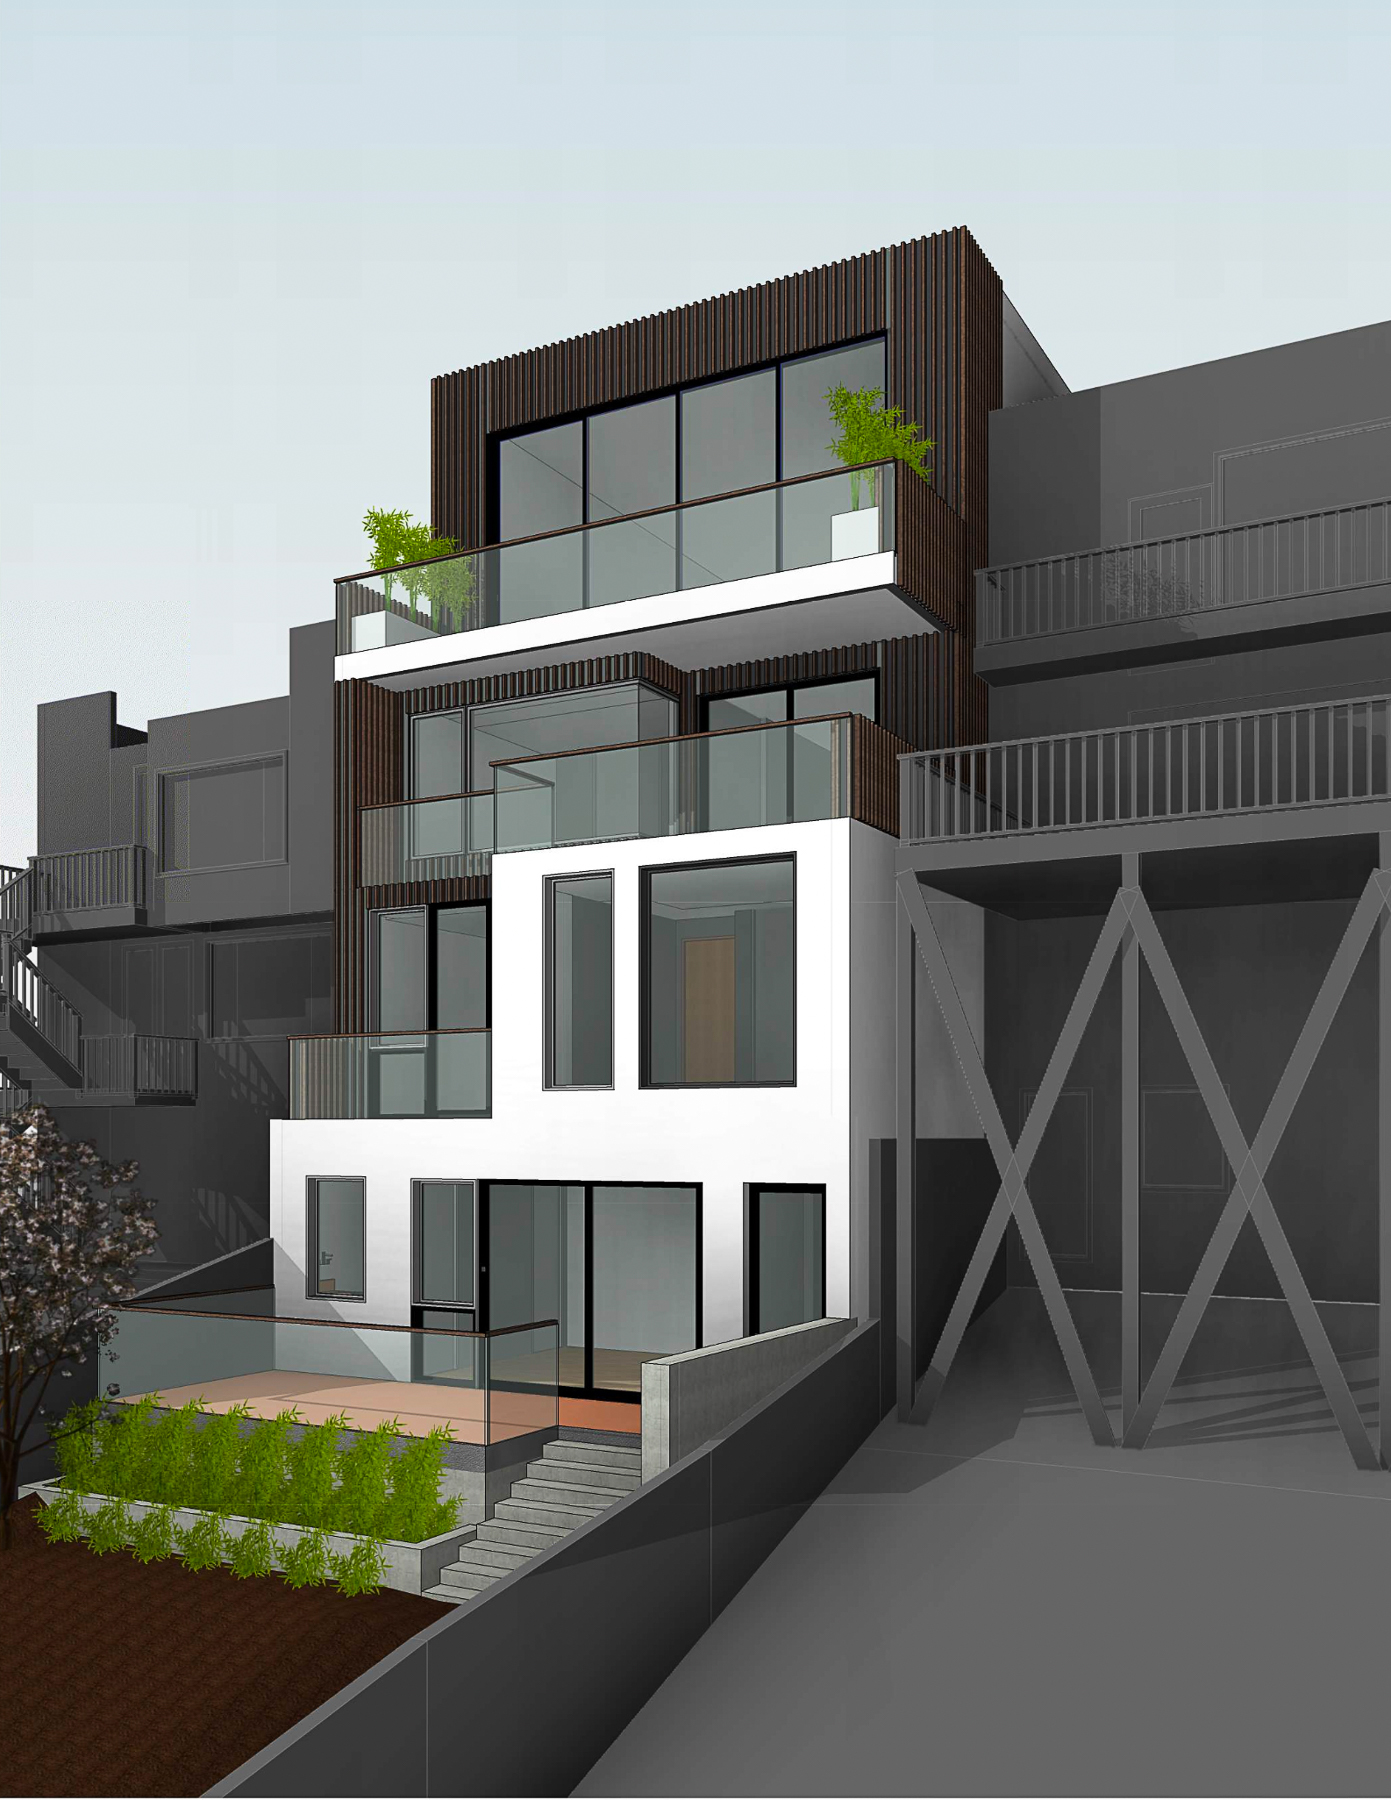 159 Laidley Street rear view, rendering by Winder Gibson Architects